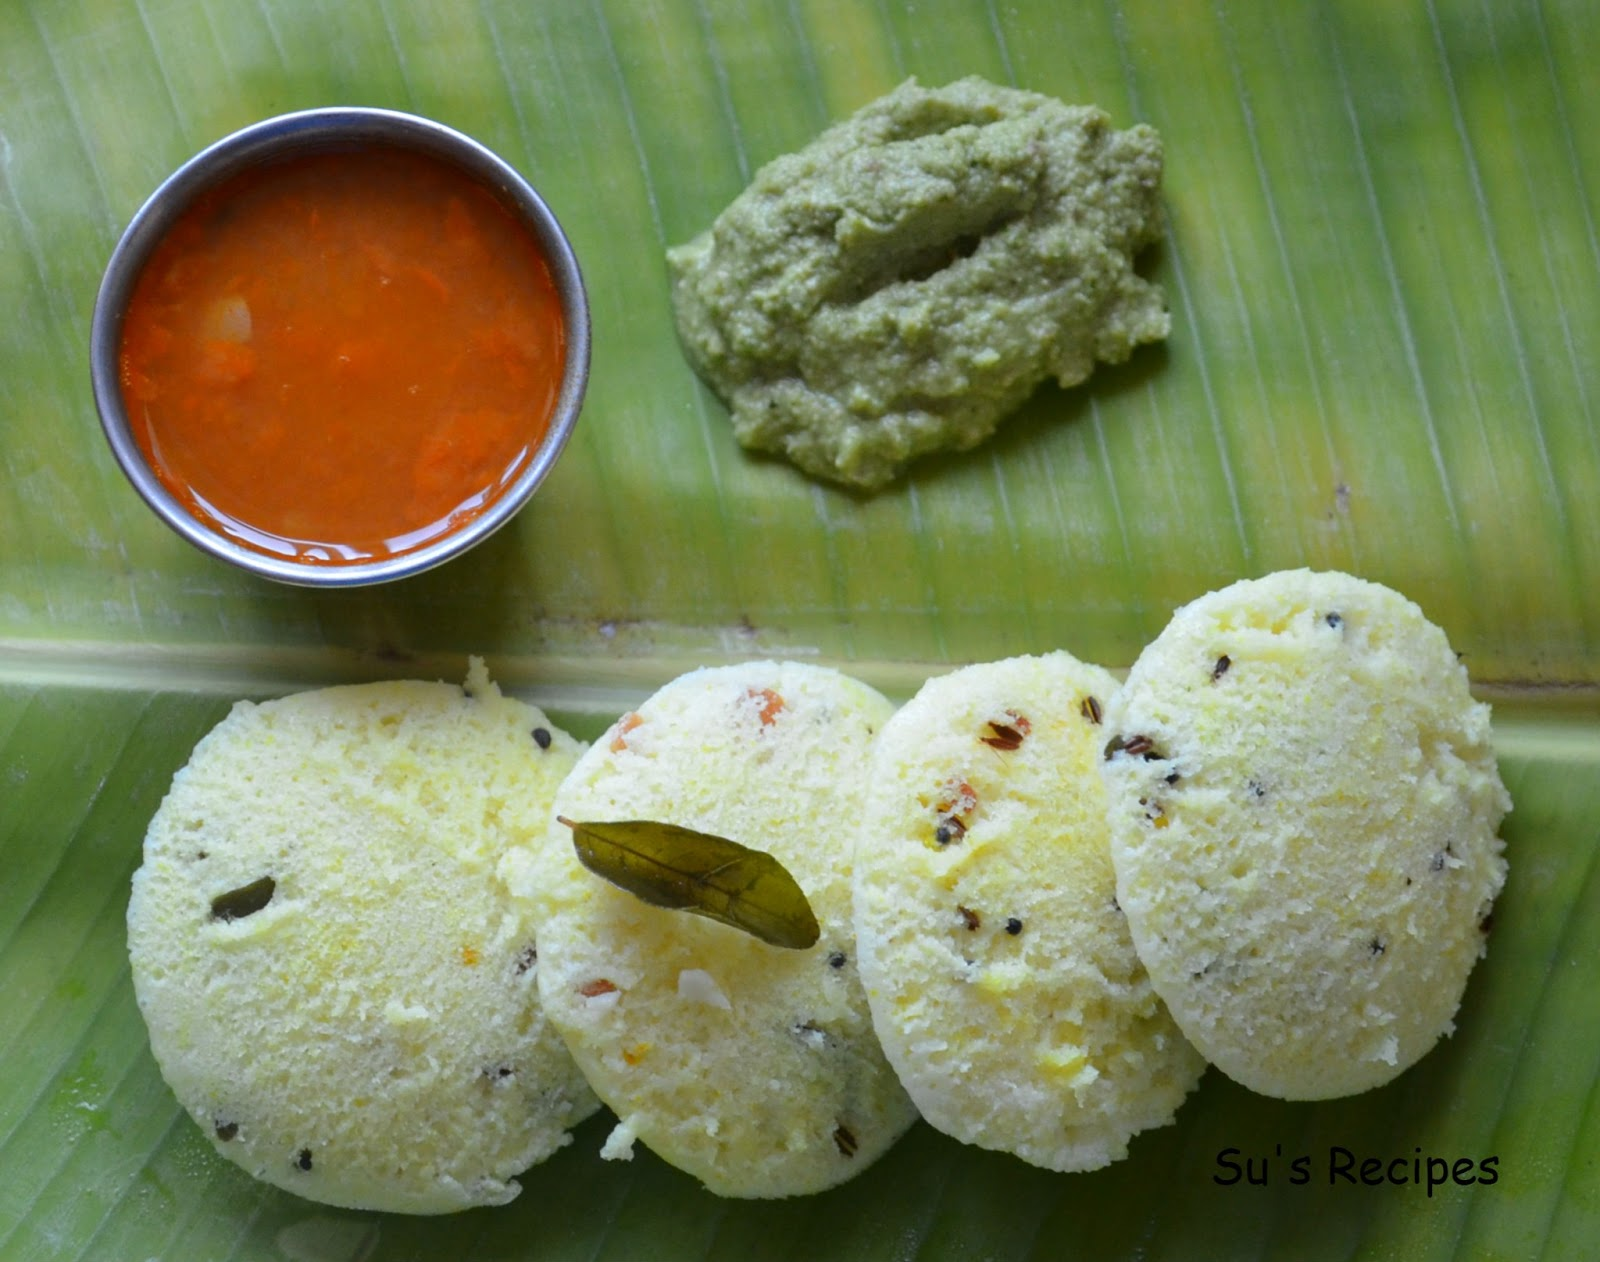 Kanchipuram Idli, spiced idli, spiced rice cakes, idlies steamed in banana leaves plantain leaves, plate idli